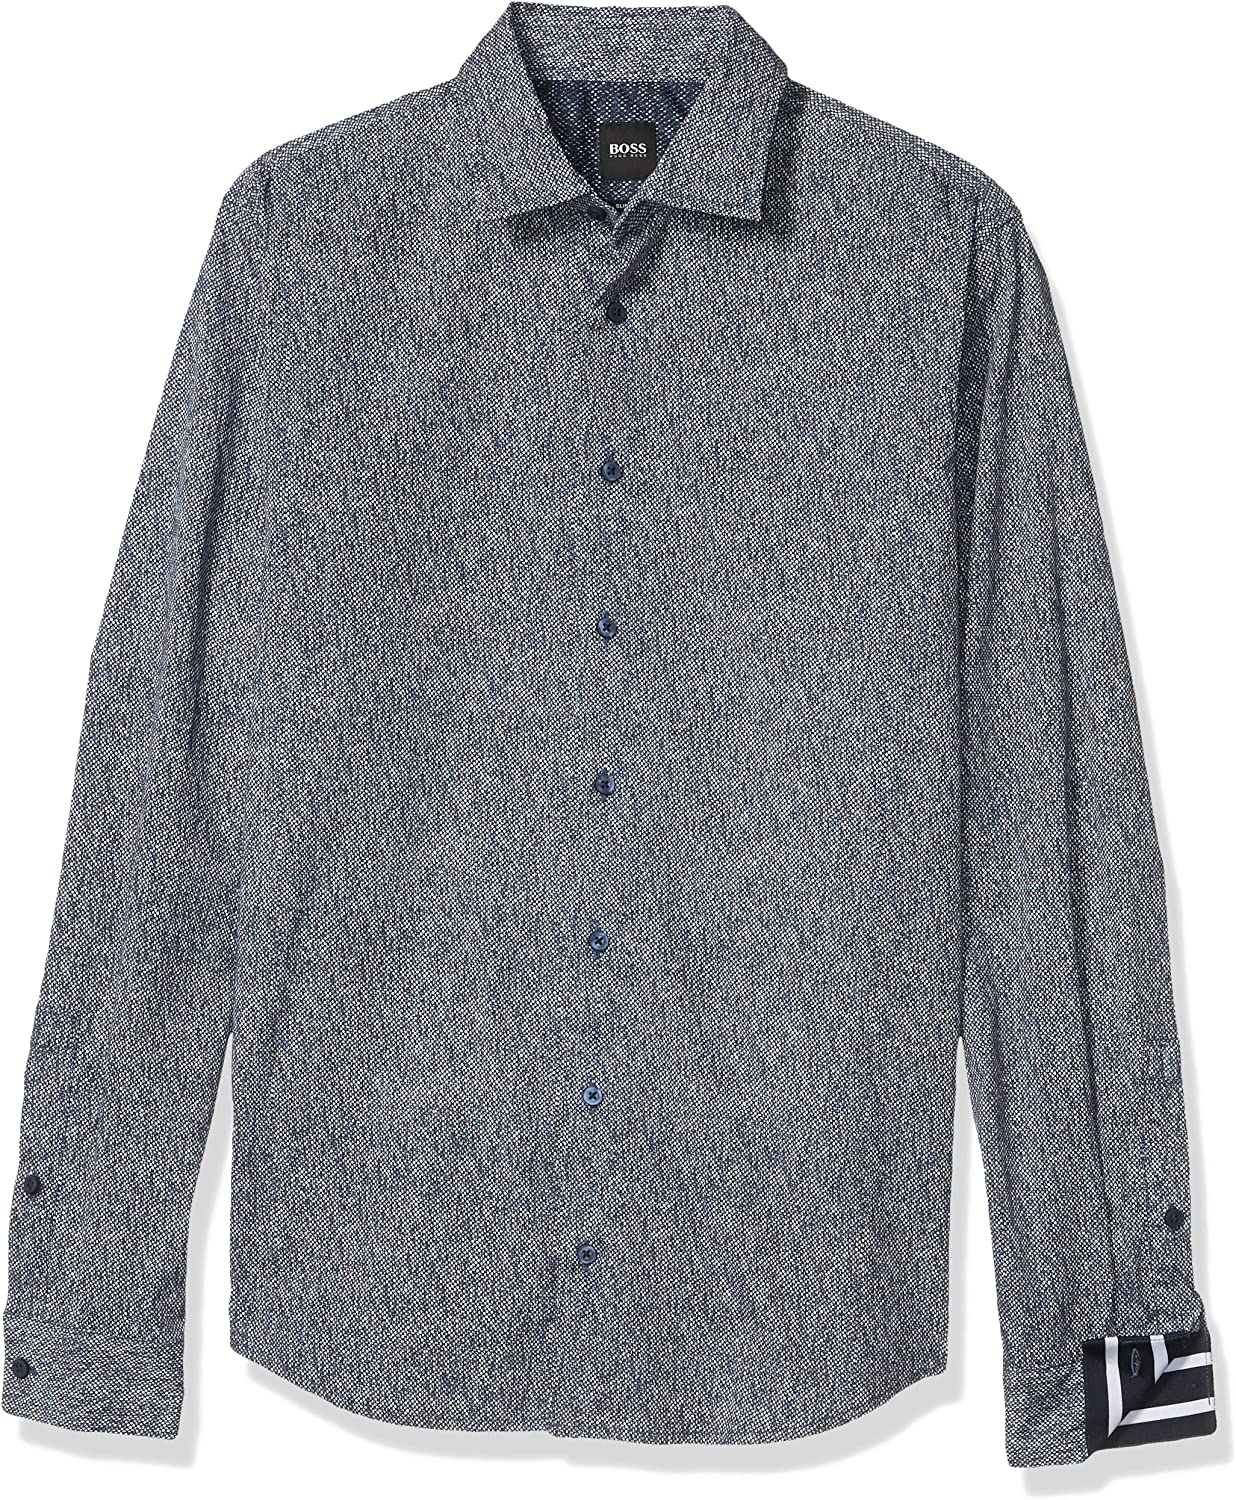 Hugo Boss Men's All Over Pattern Button Down Shirt